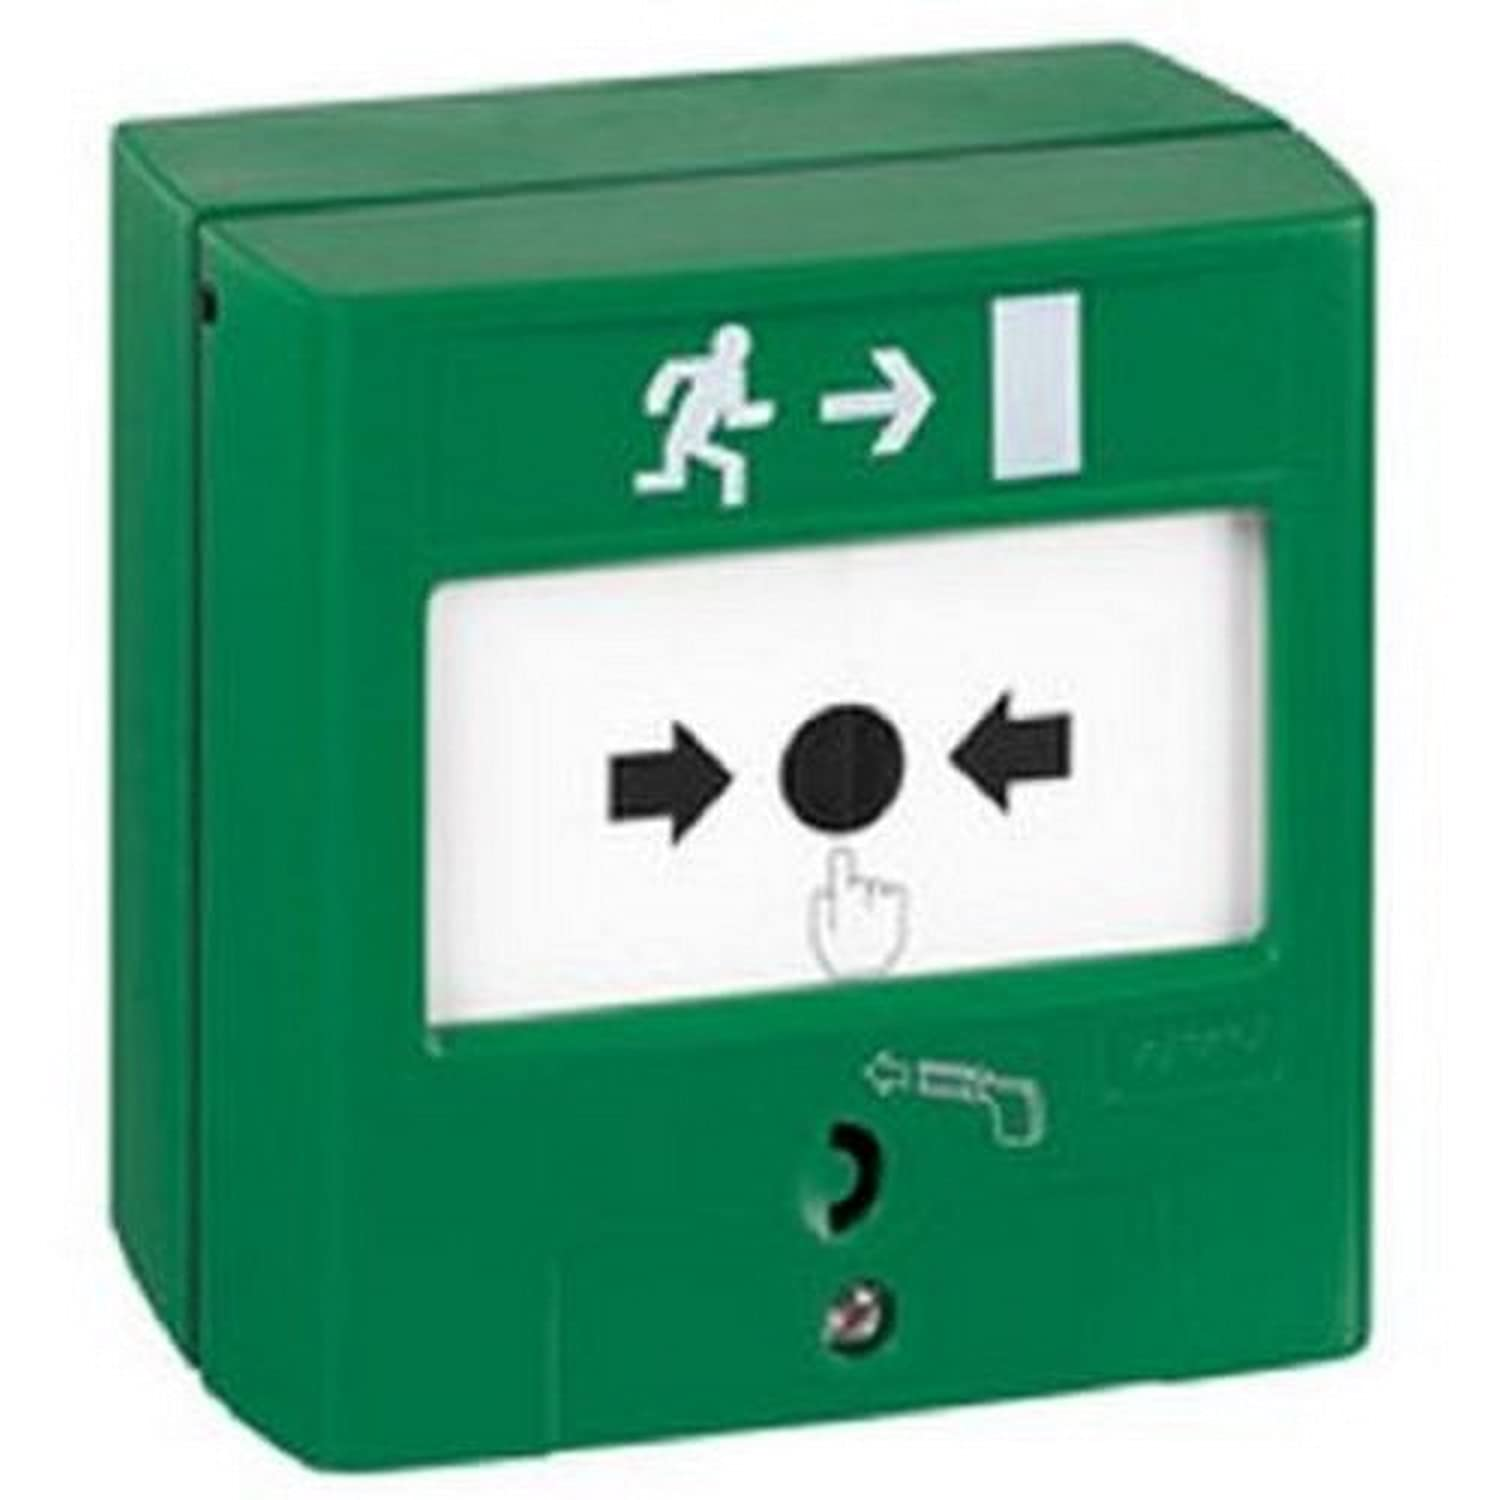 dispositif de commande pour issue de secours - 1 contact - legrand 138023